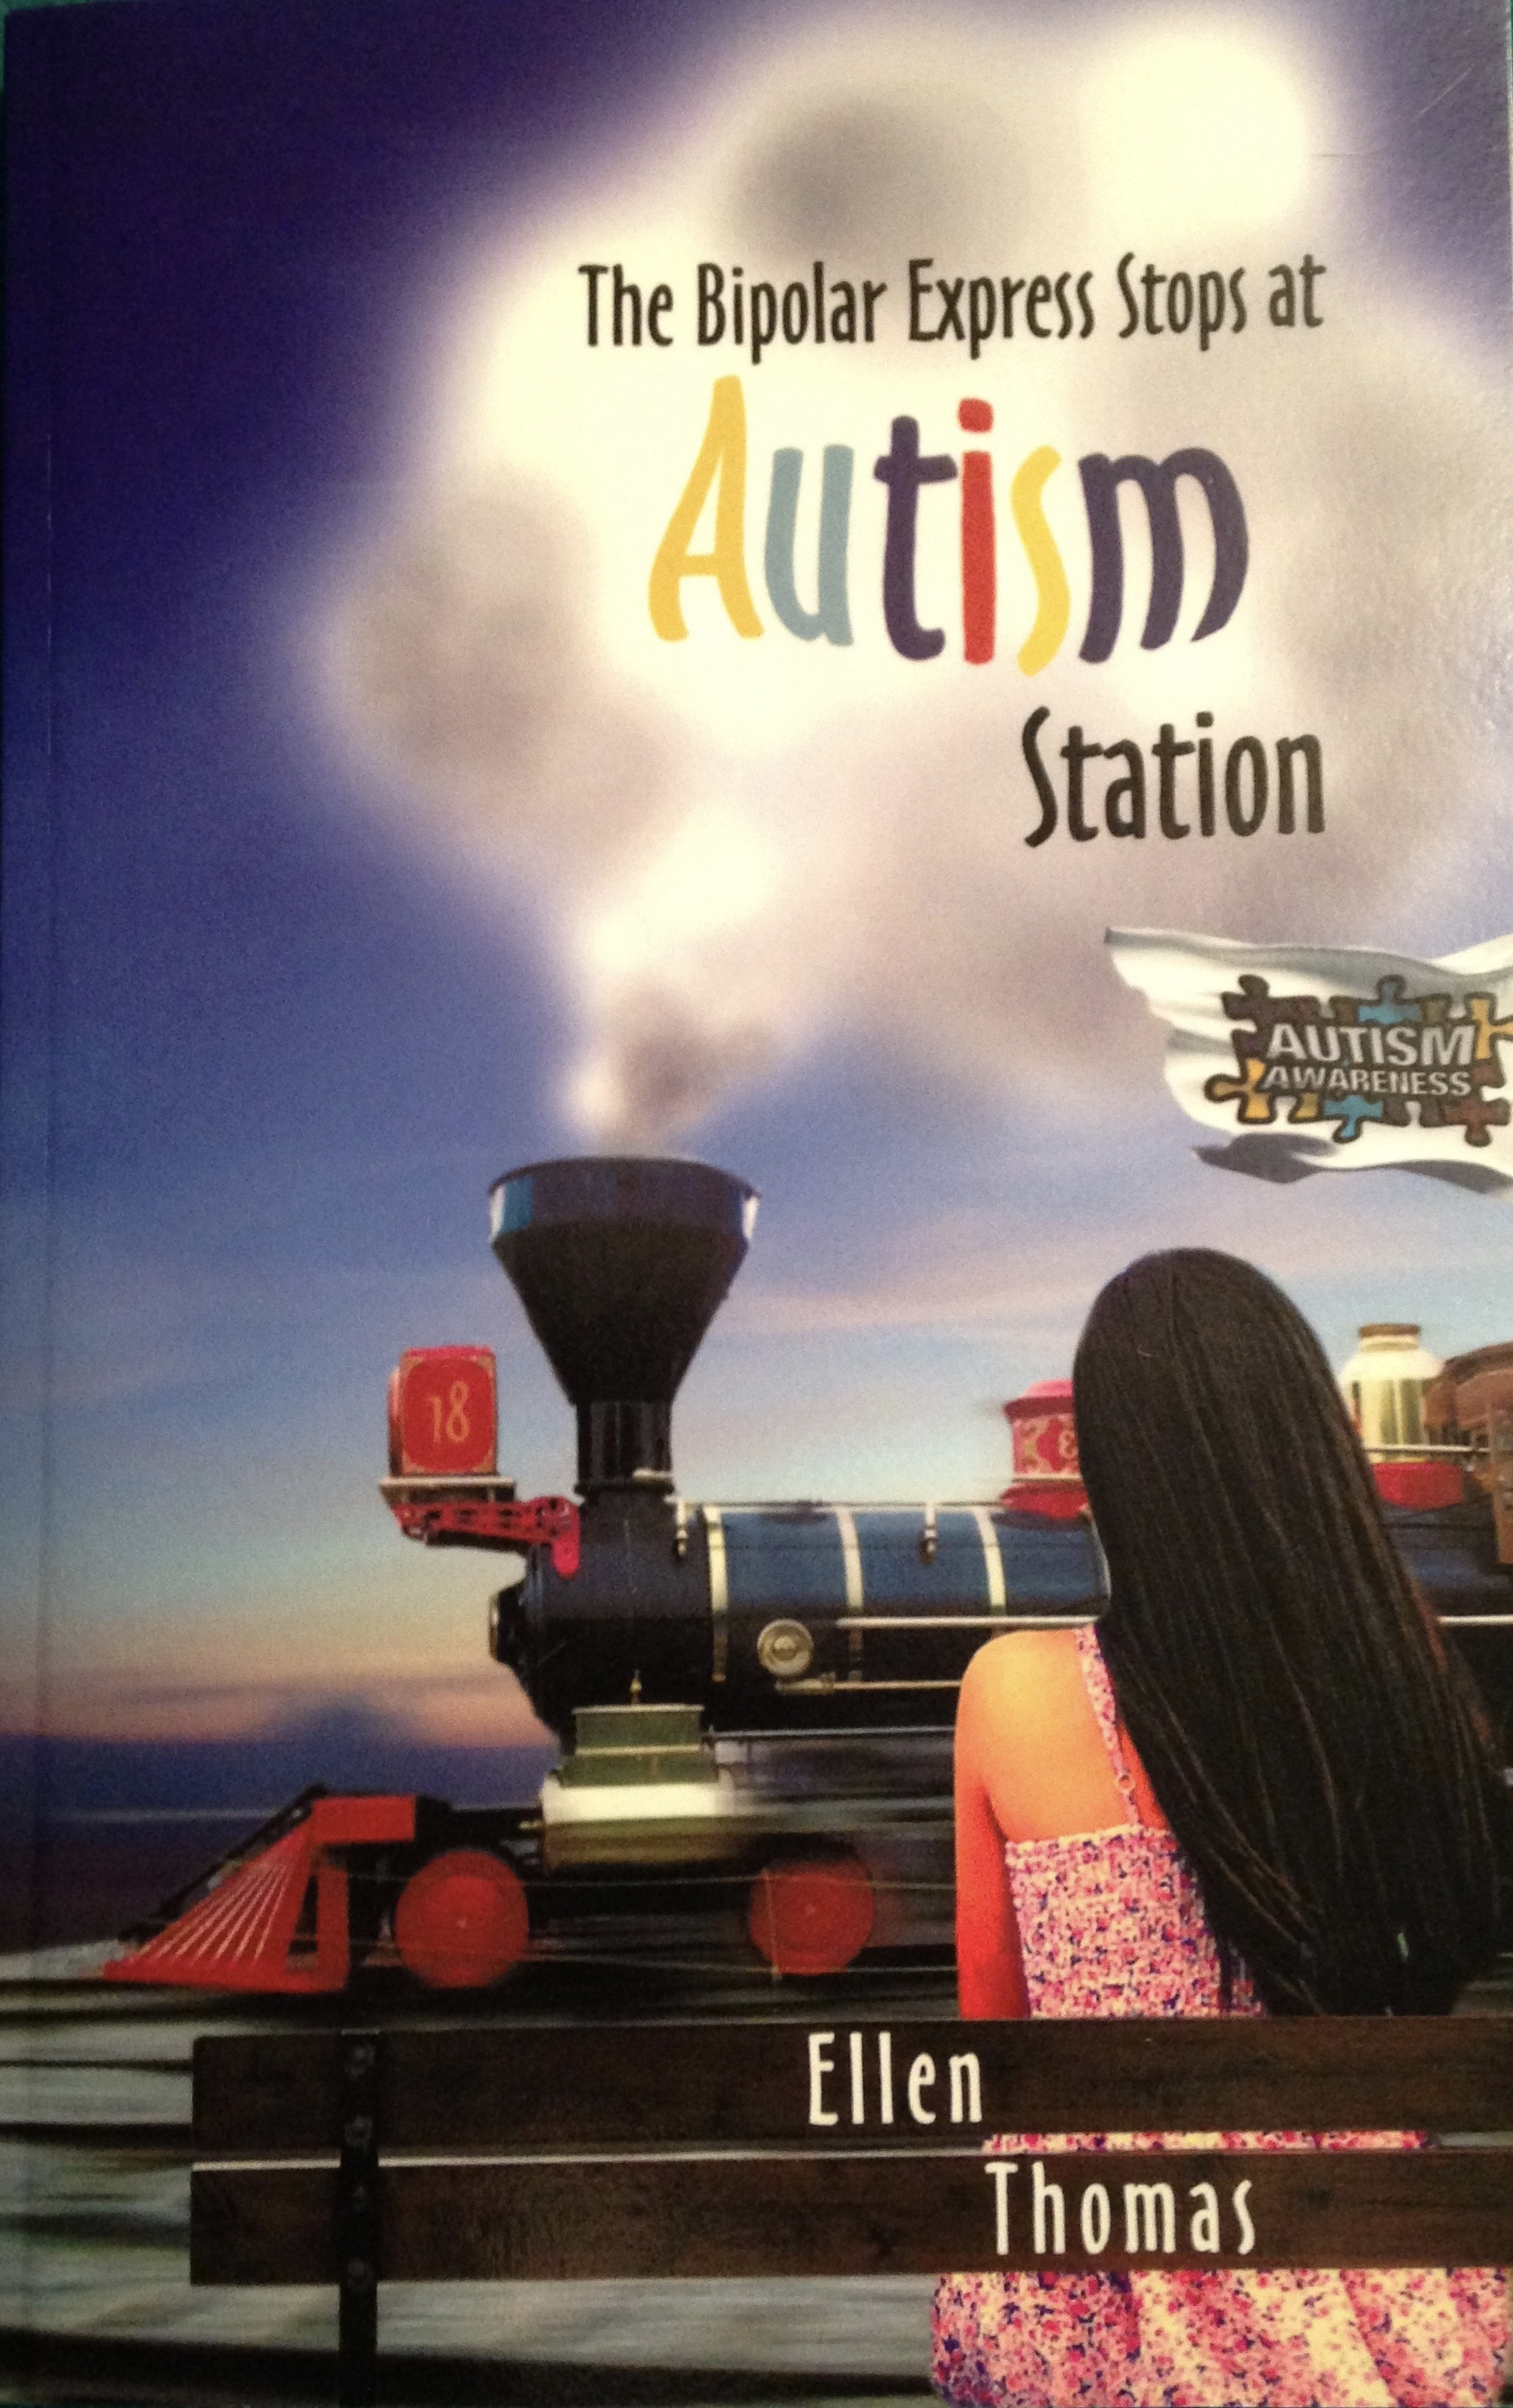 The Bipolar Express Stops At Autism Station